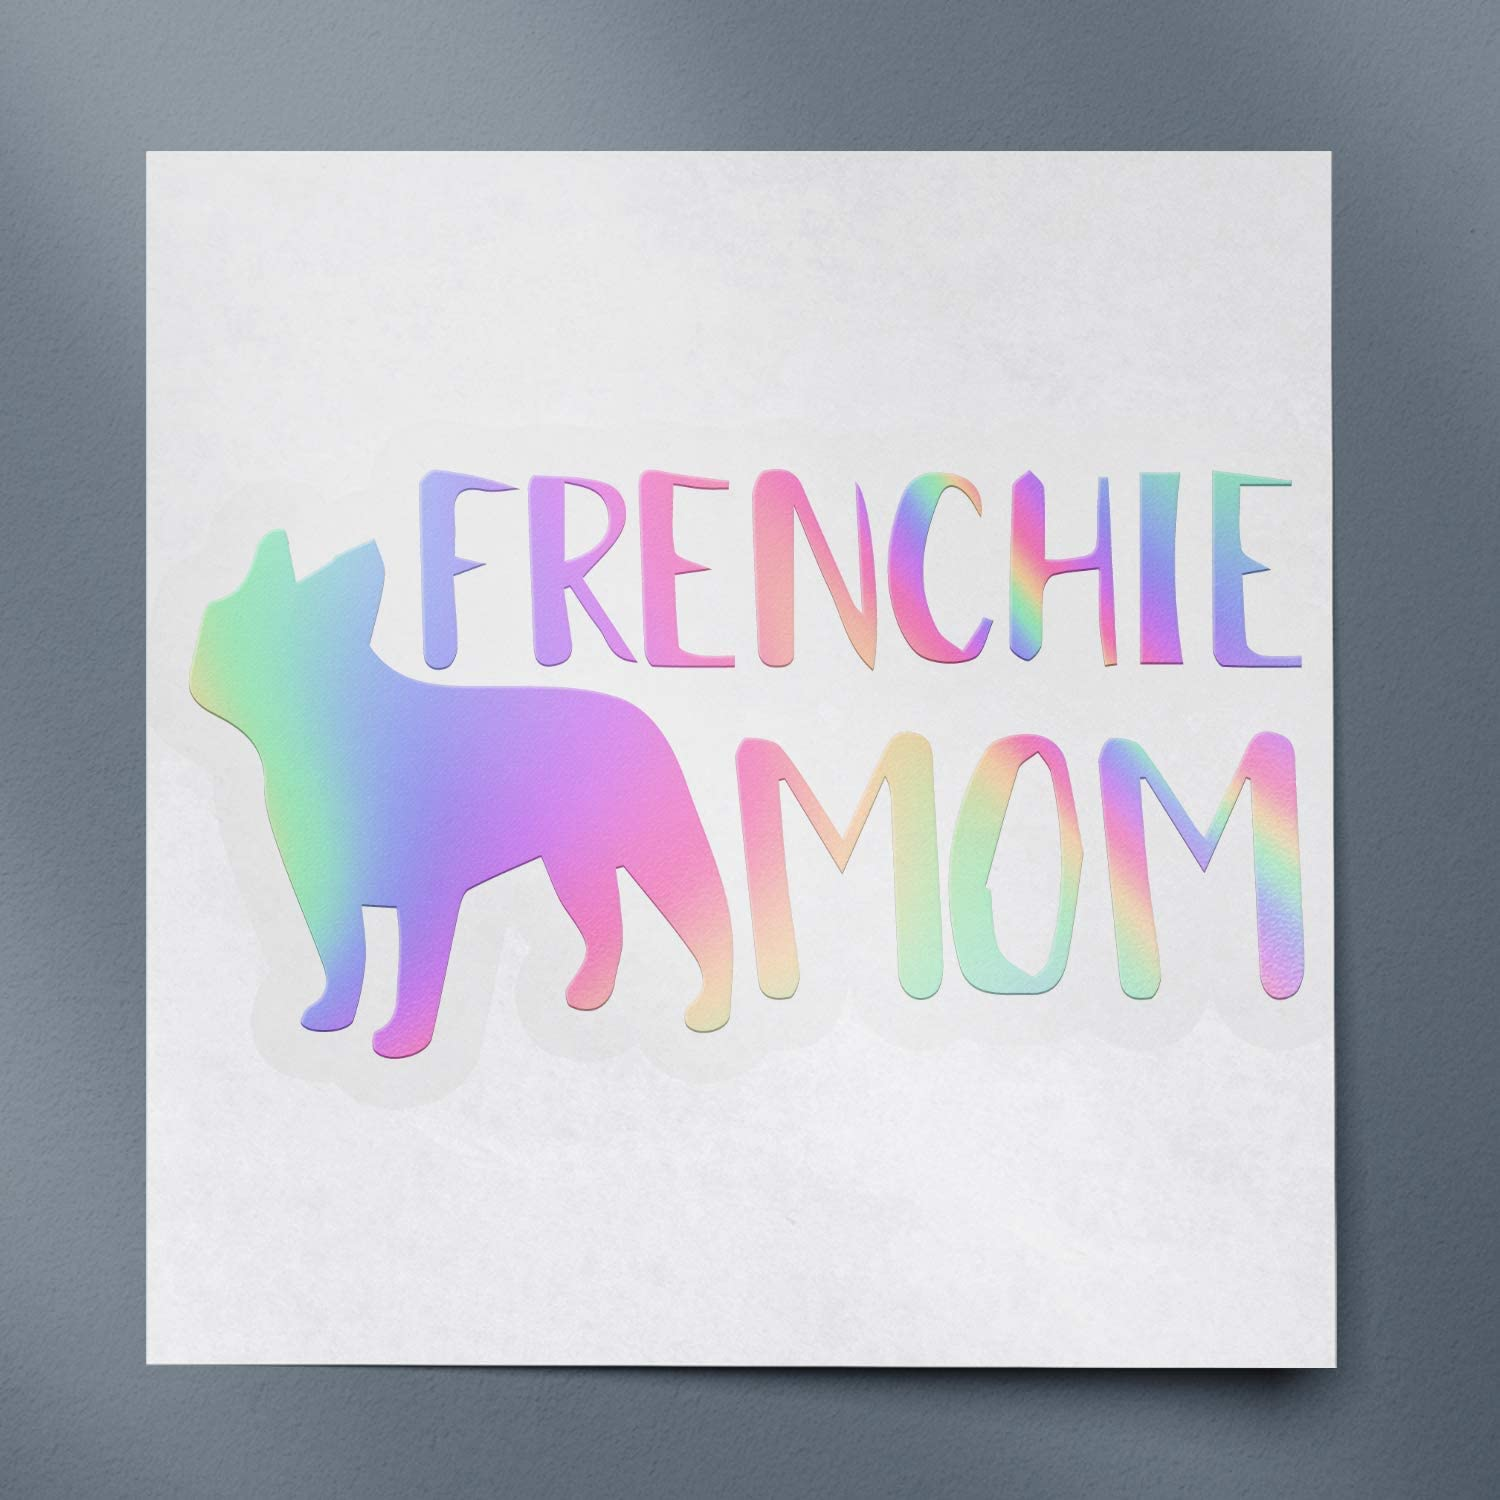 USC DECALS Frenchie Mom French Bulldog (Hologram) (Set of 2) Premium Waterproof Vinyl Decal Stickers for Laptop Phone Accessory Helmet Car Window Bumper Mug Tuber Cup Door Wall Decoration